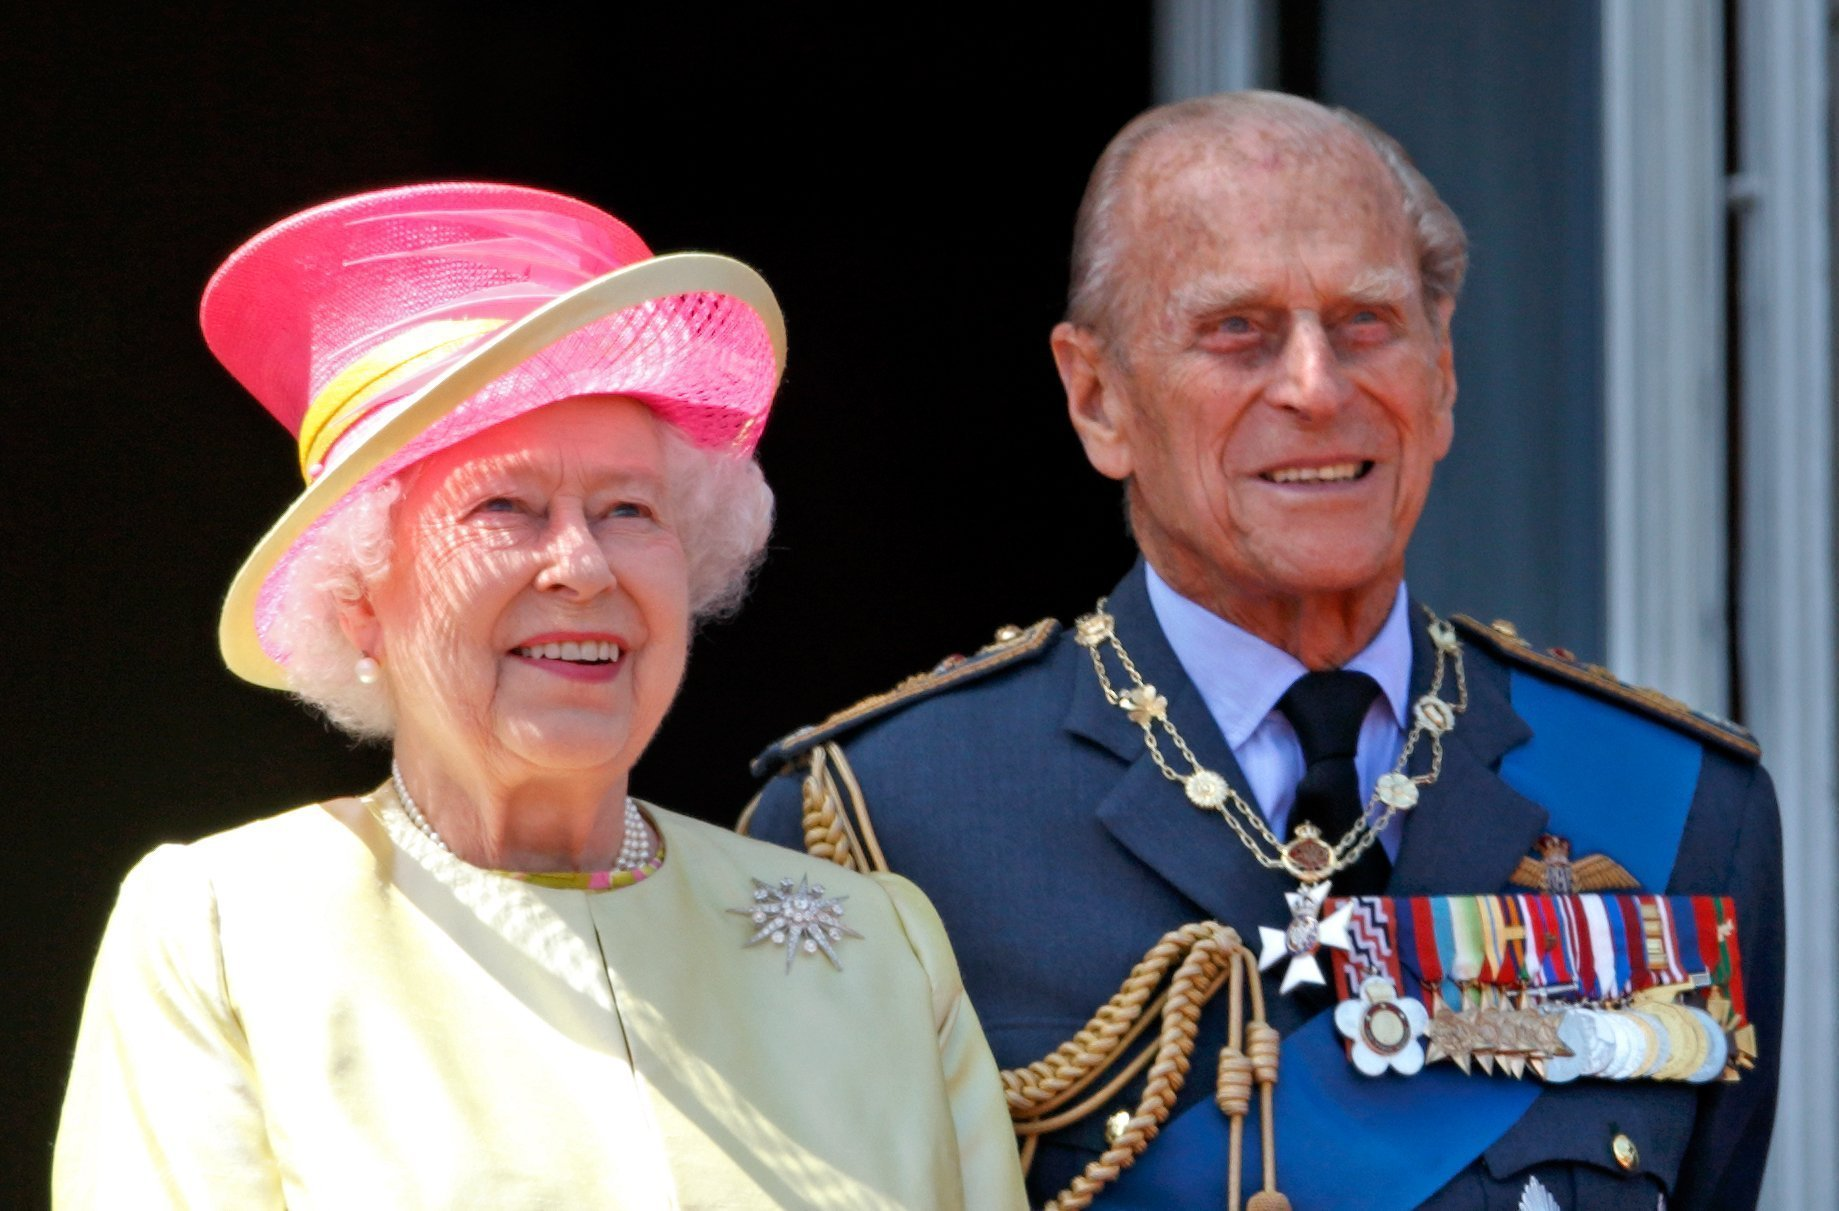 Queen Elizabeth II and Prince Philip attend the 75th Anniversary of The Battle of Britain on July 10, 2015, in London, England. | Source: Getty Images.